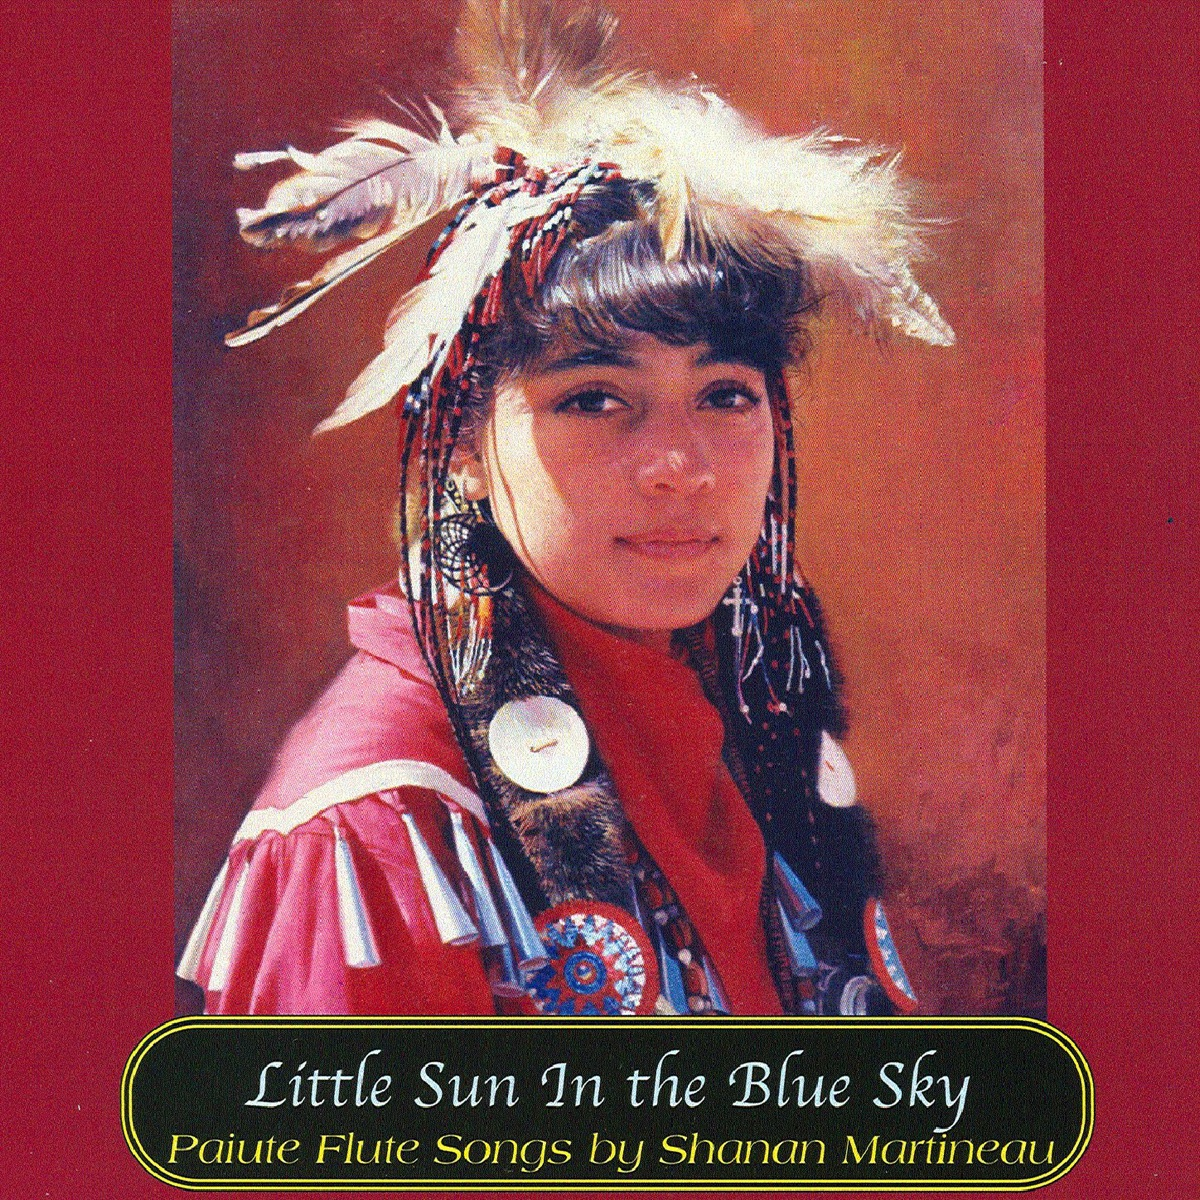 Little Sun In the Blue Sky Shanan Martineau CD cover